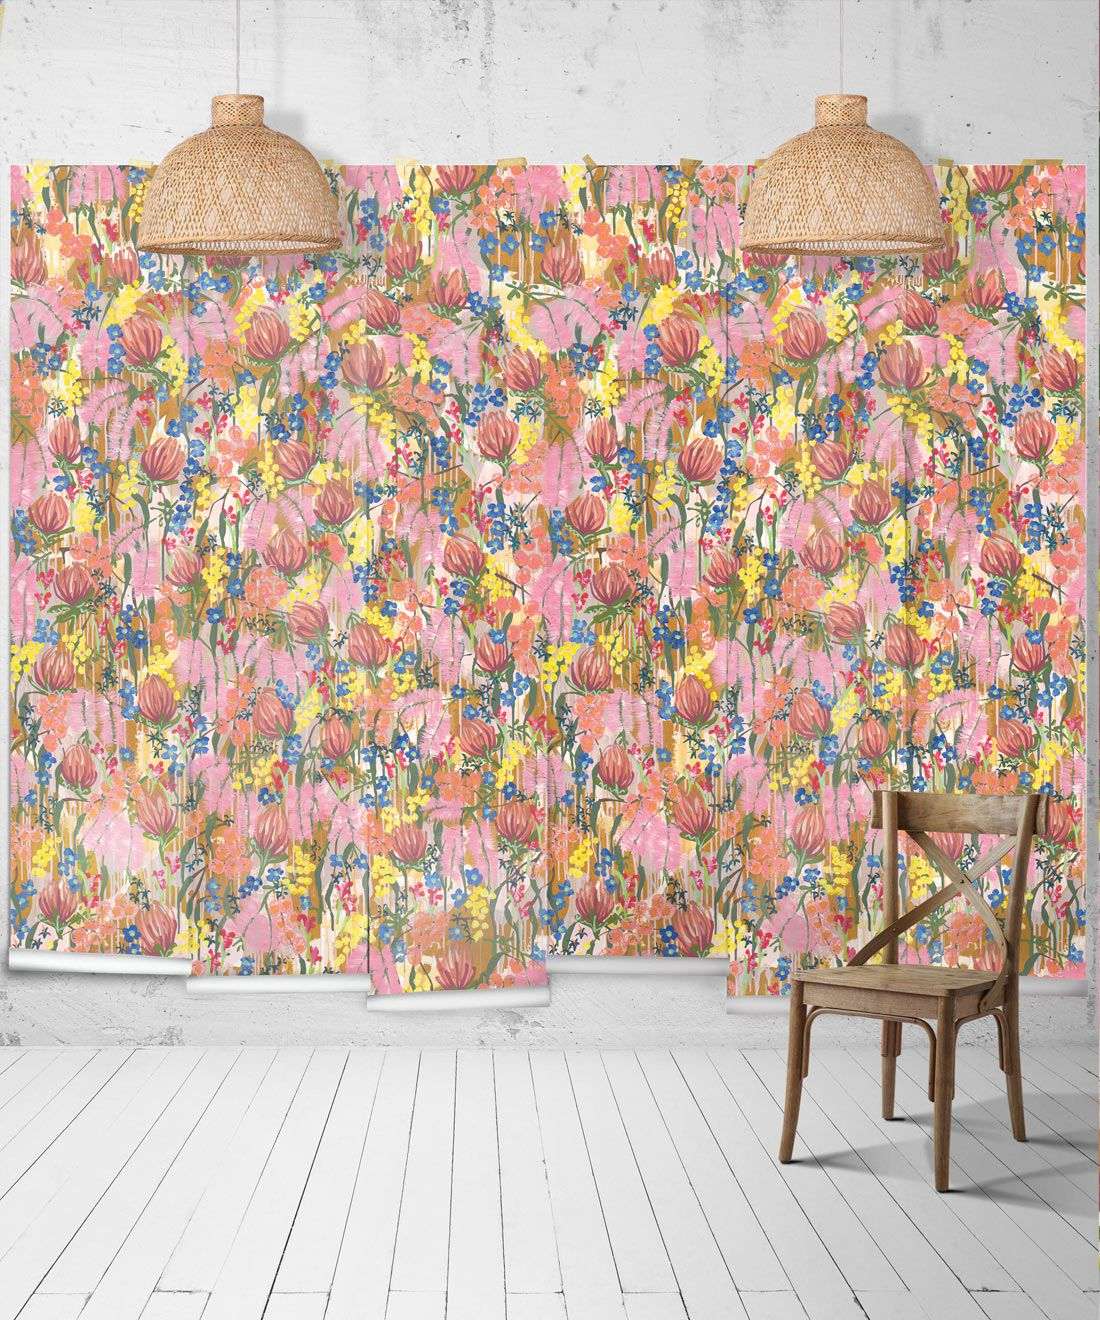 Acacia Wallpaper •Colorful Floral Wallpaper • Tiff Manuell • Abstract Expressionist Wallpaper • Insitu